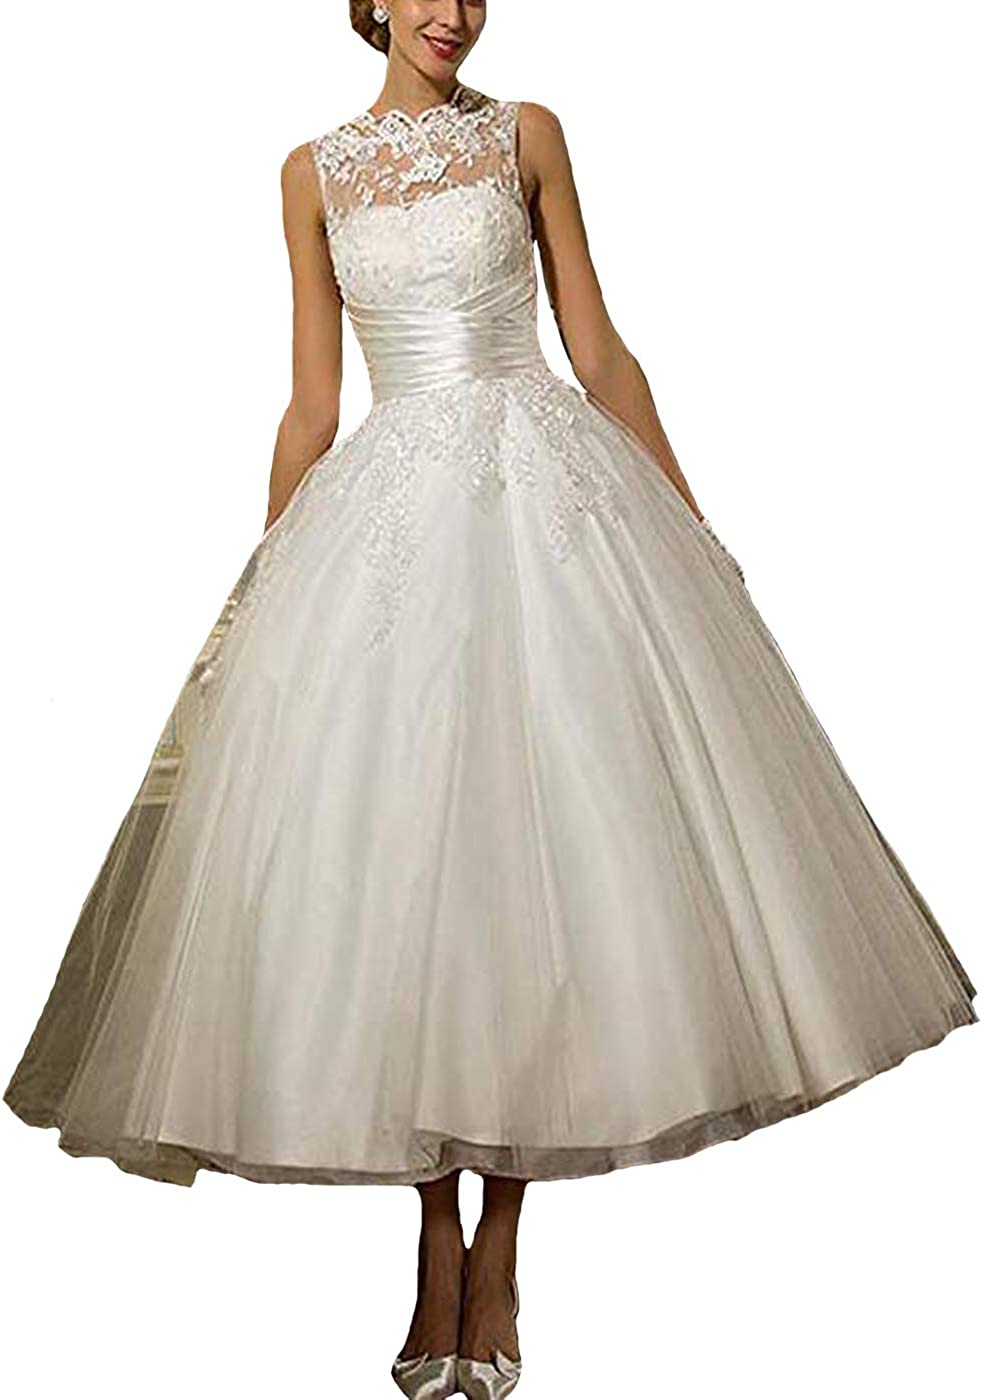 Fair Lady Lace Ball Gown Wedding Dresses 20s Princess Formal Wedding  Party Bridal Gowns